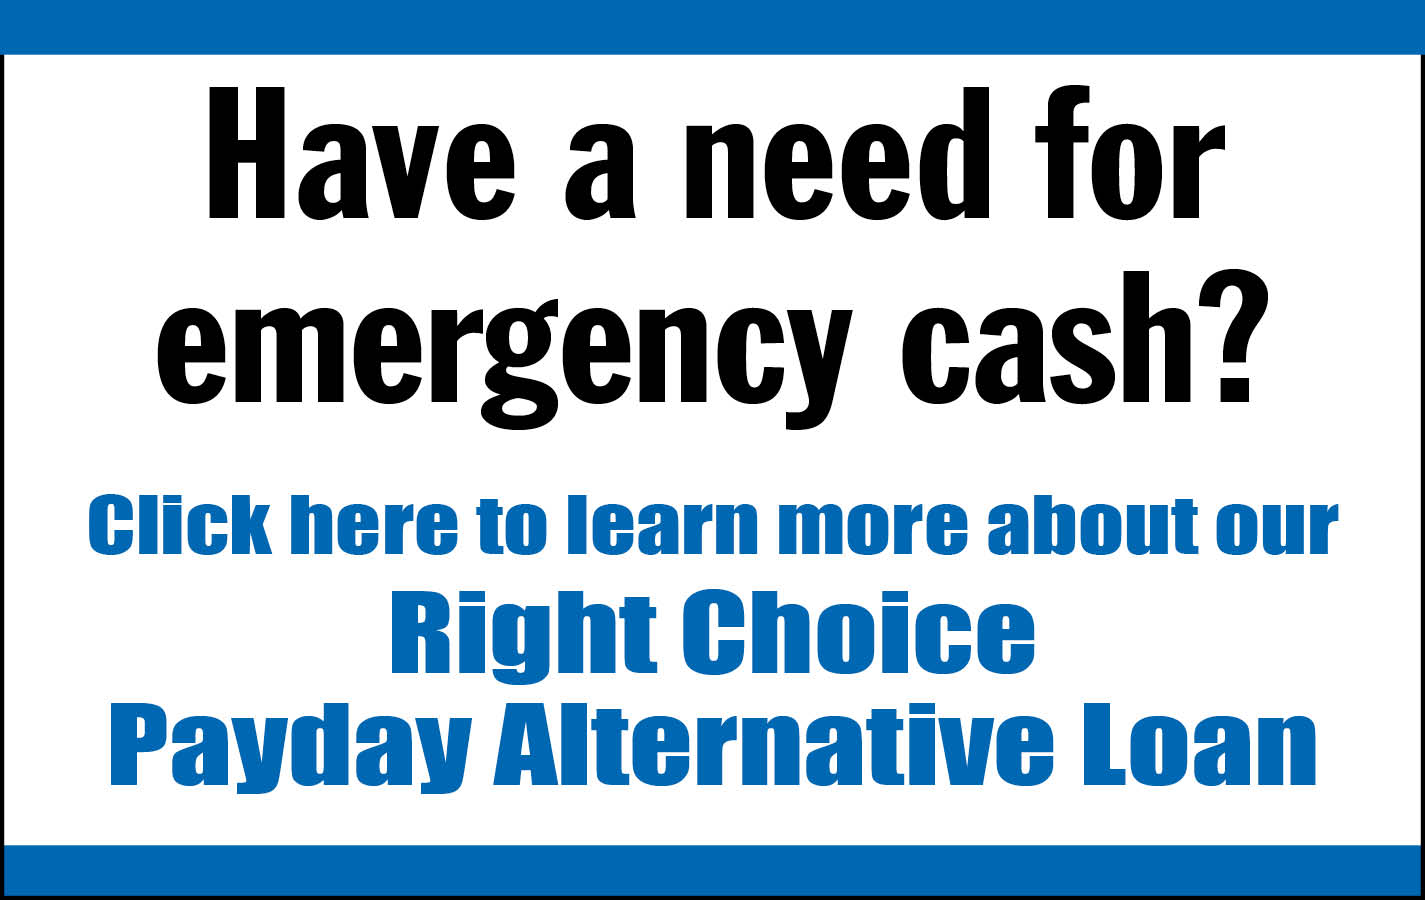 Payday Alternative Loan